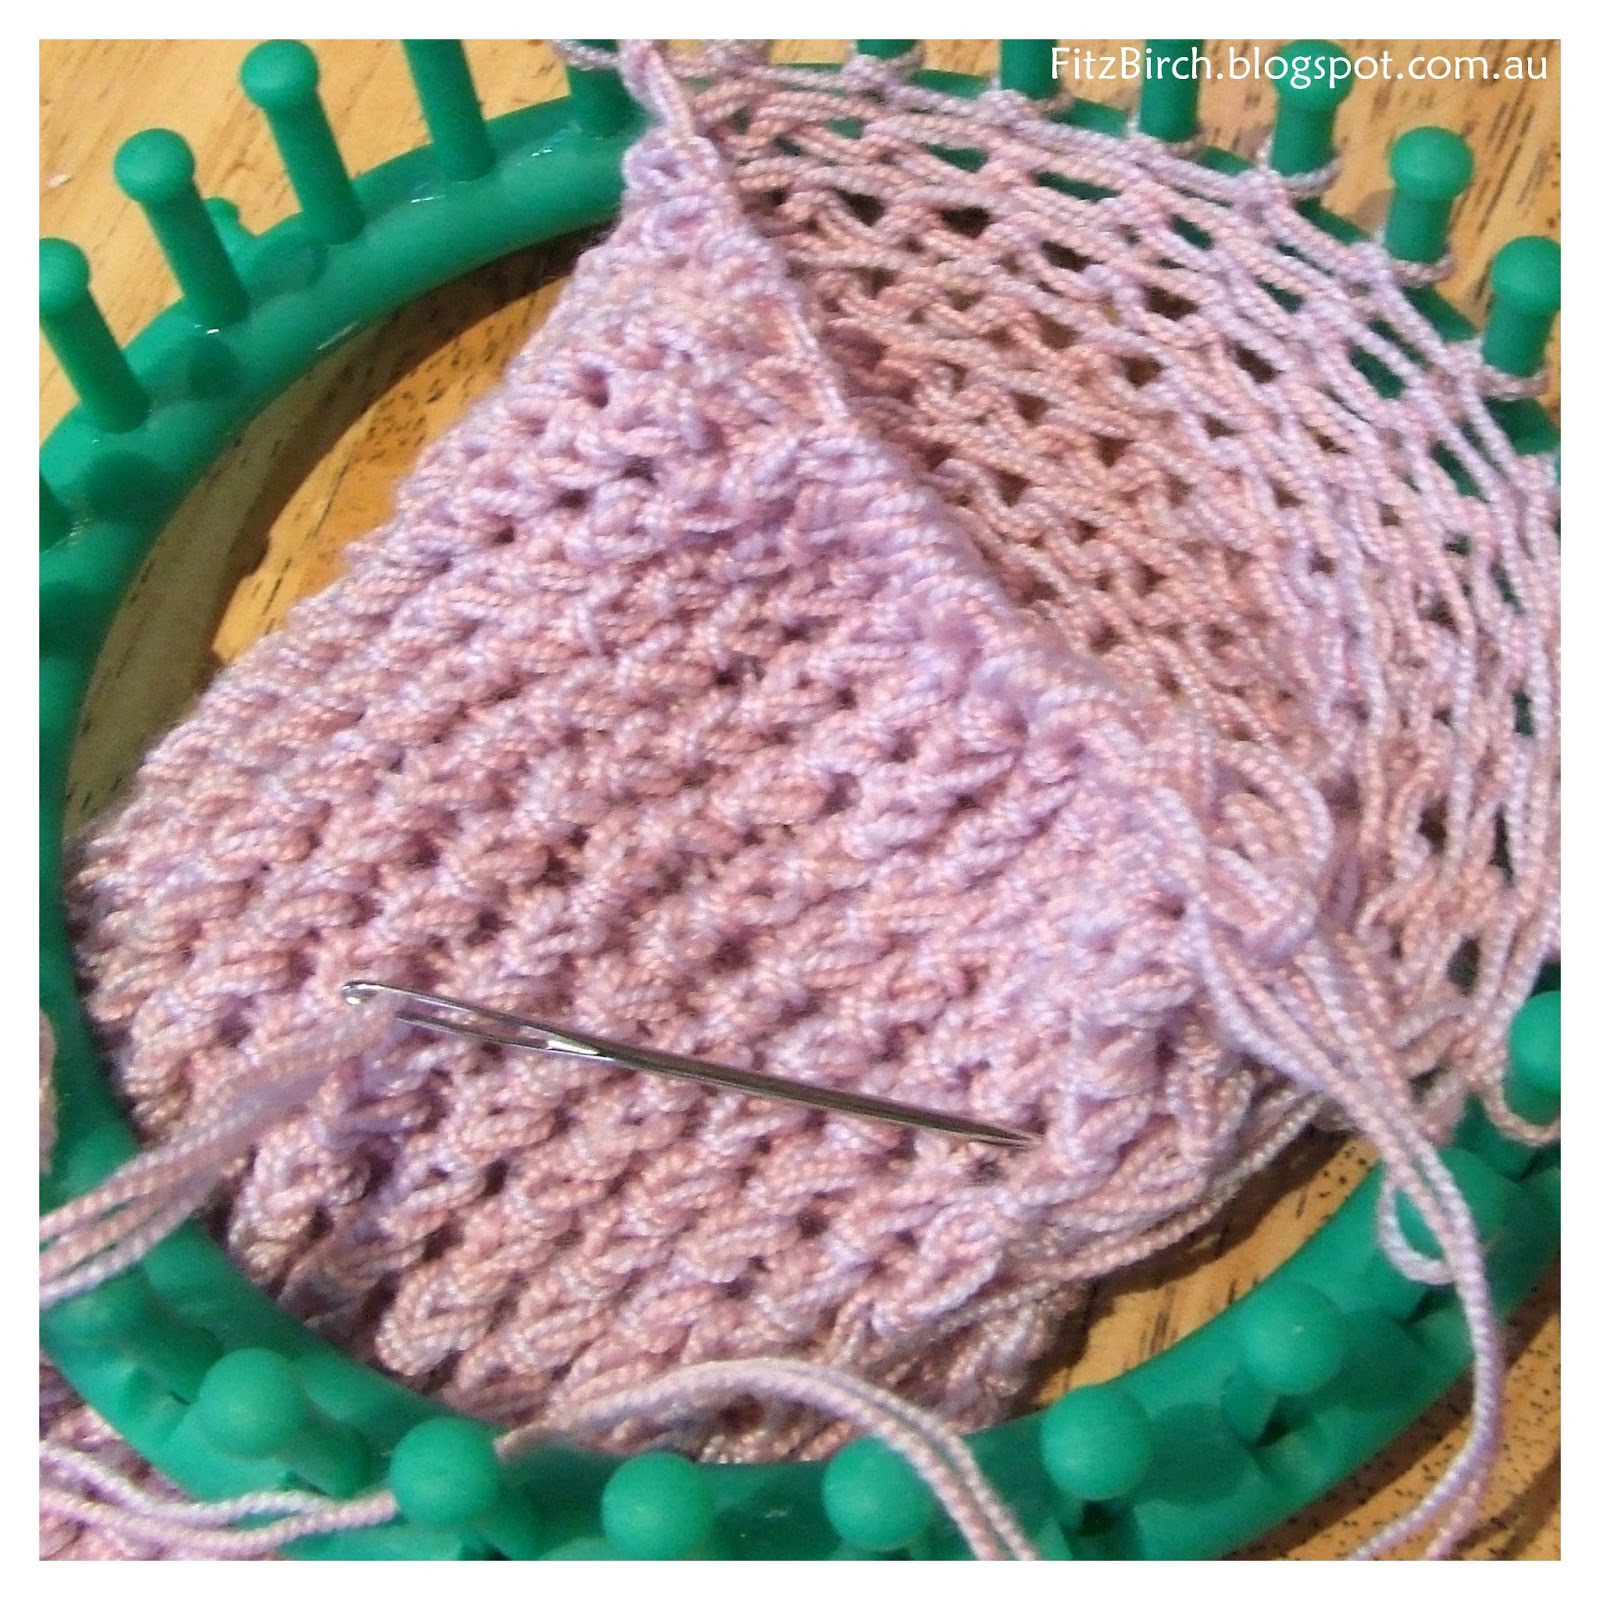 Knitting Loom Stitches : Fitzbirch crafts loom knit tea cosy